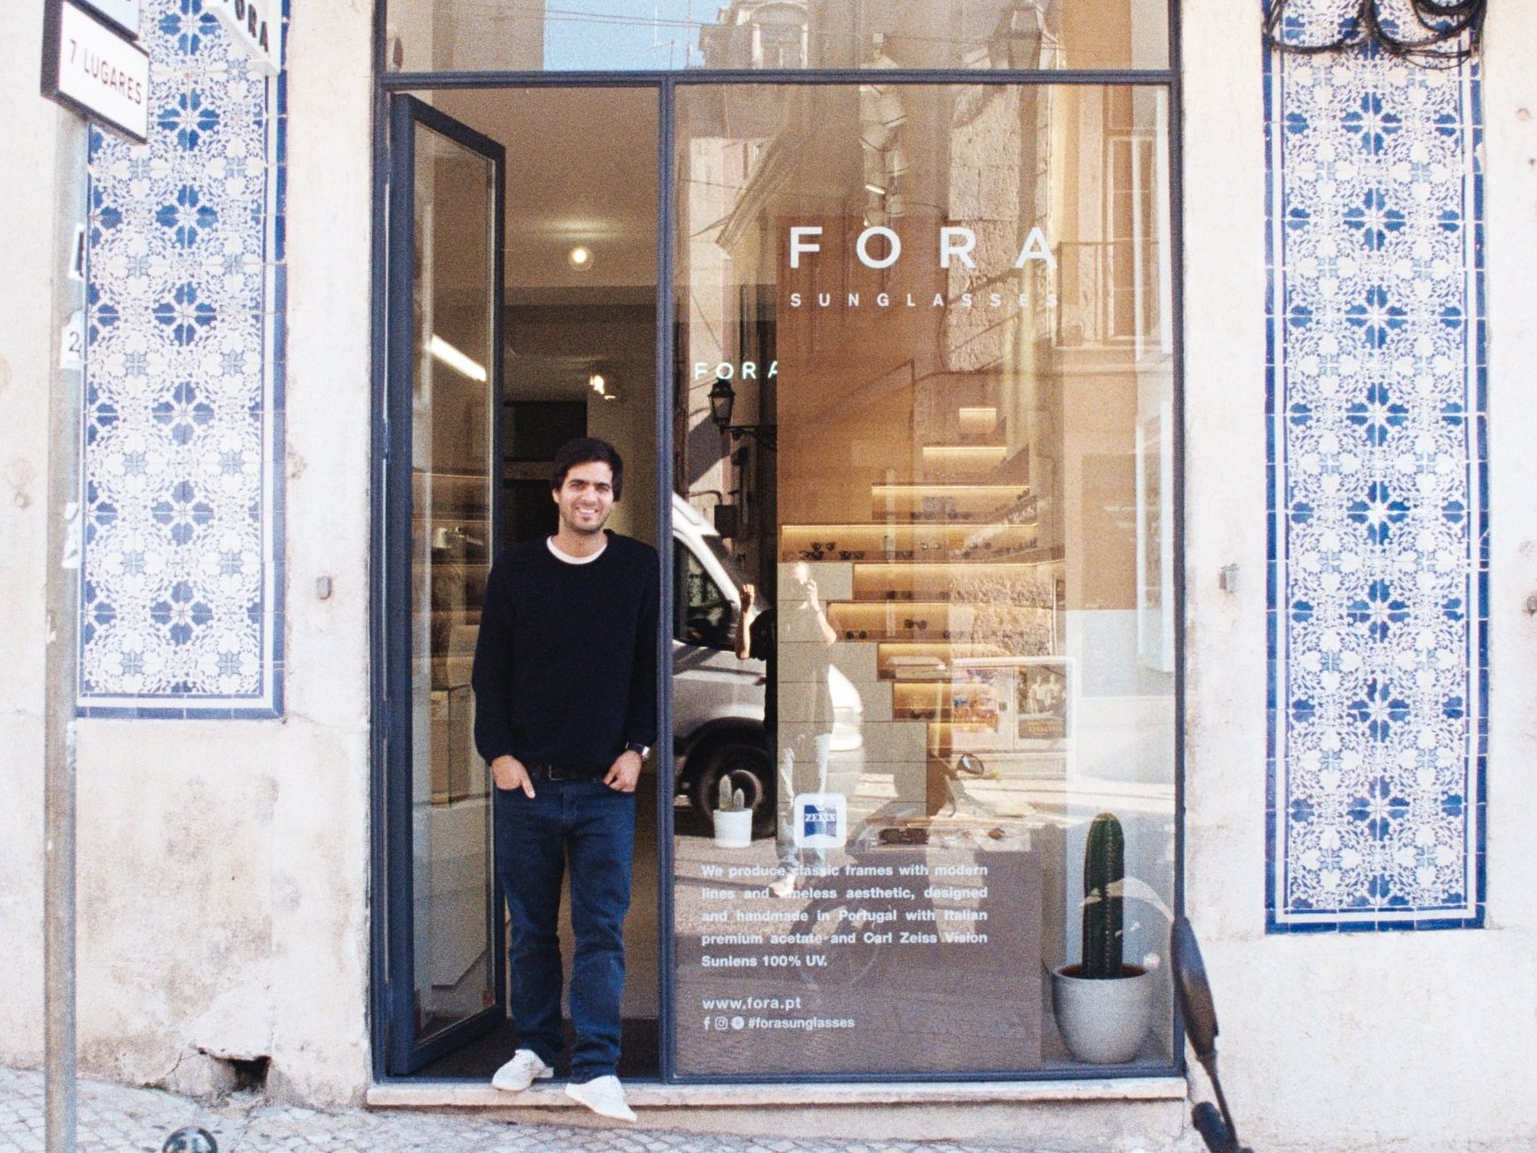 Our original material about FORA - We traveled to Lisbon to talk to Miguel Barral about his story from selling vintage sunglasses in Lisbon to the largest Portuguese eyewear brand.